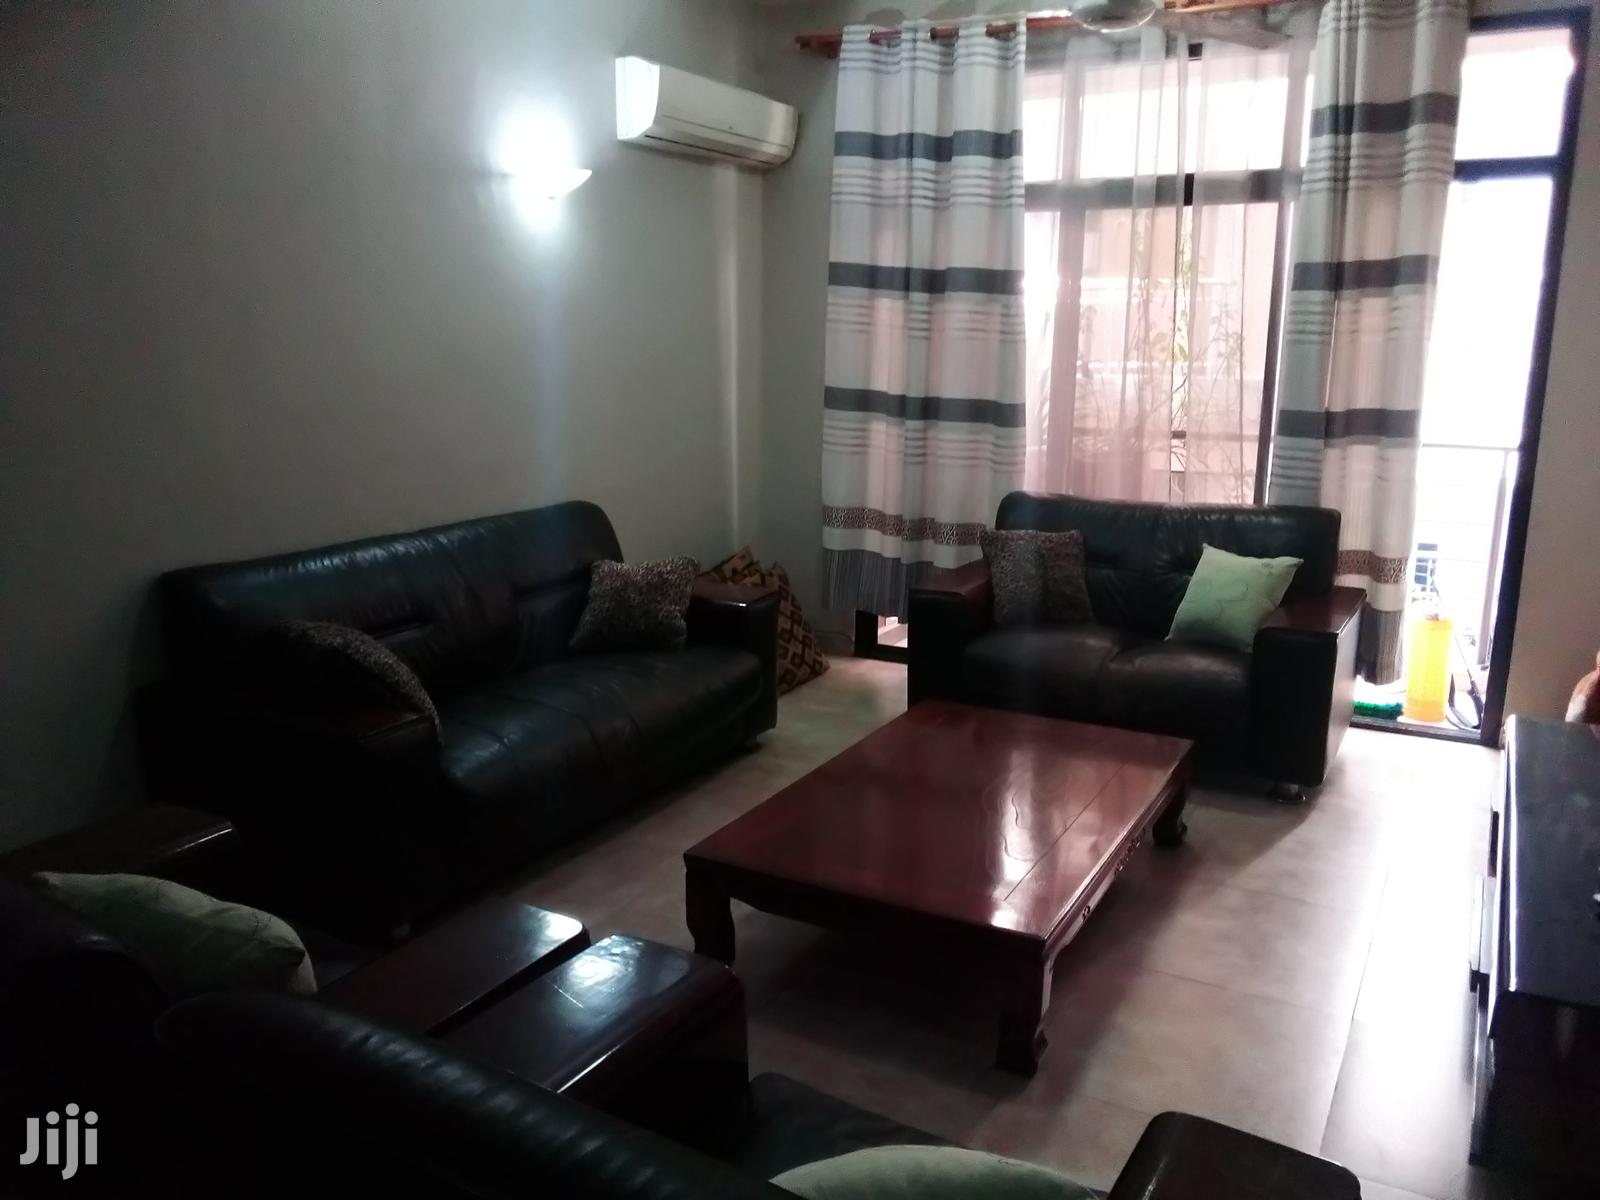 Luxury 3 Bedrooms Fully Furnished For Rent At Upanga | Houses & Apartments For Rent for sale in Ilala, Dar es Salaam, Tanzania